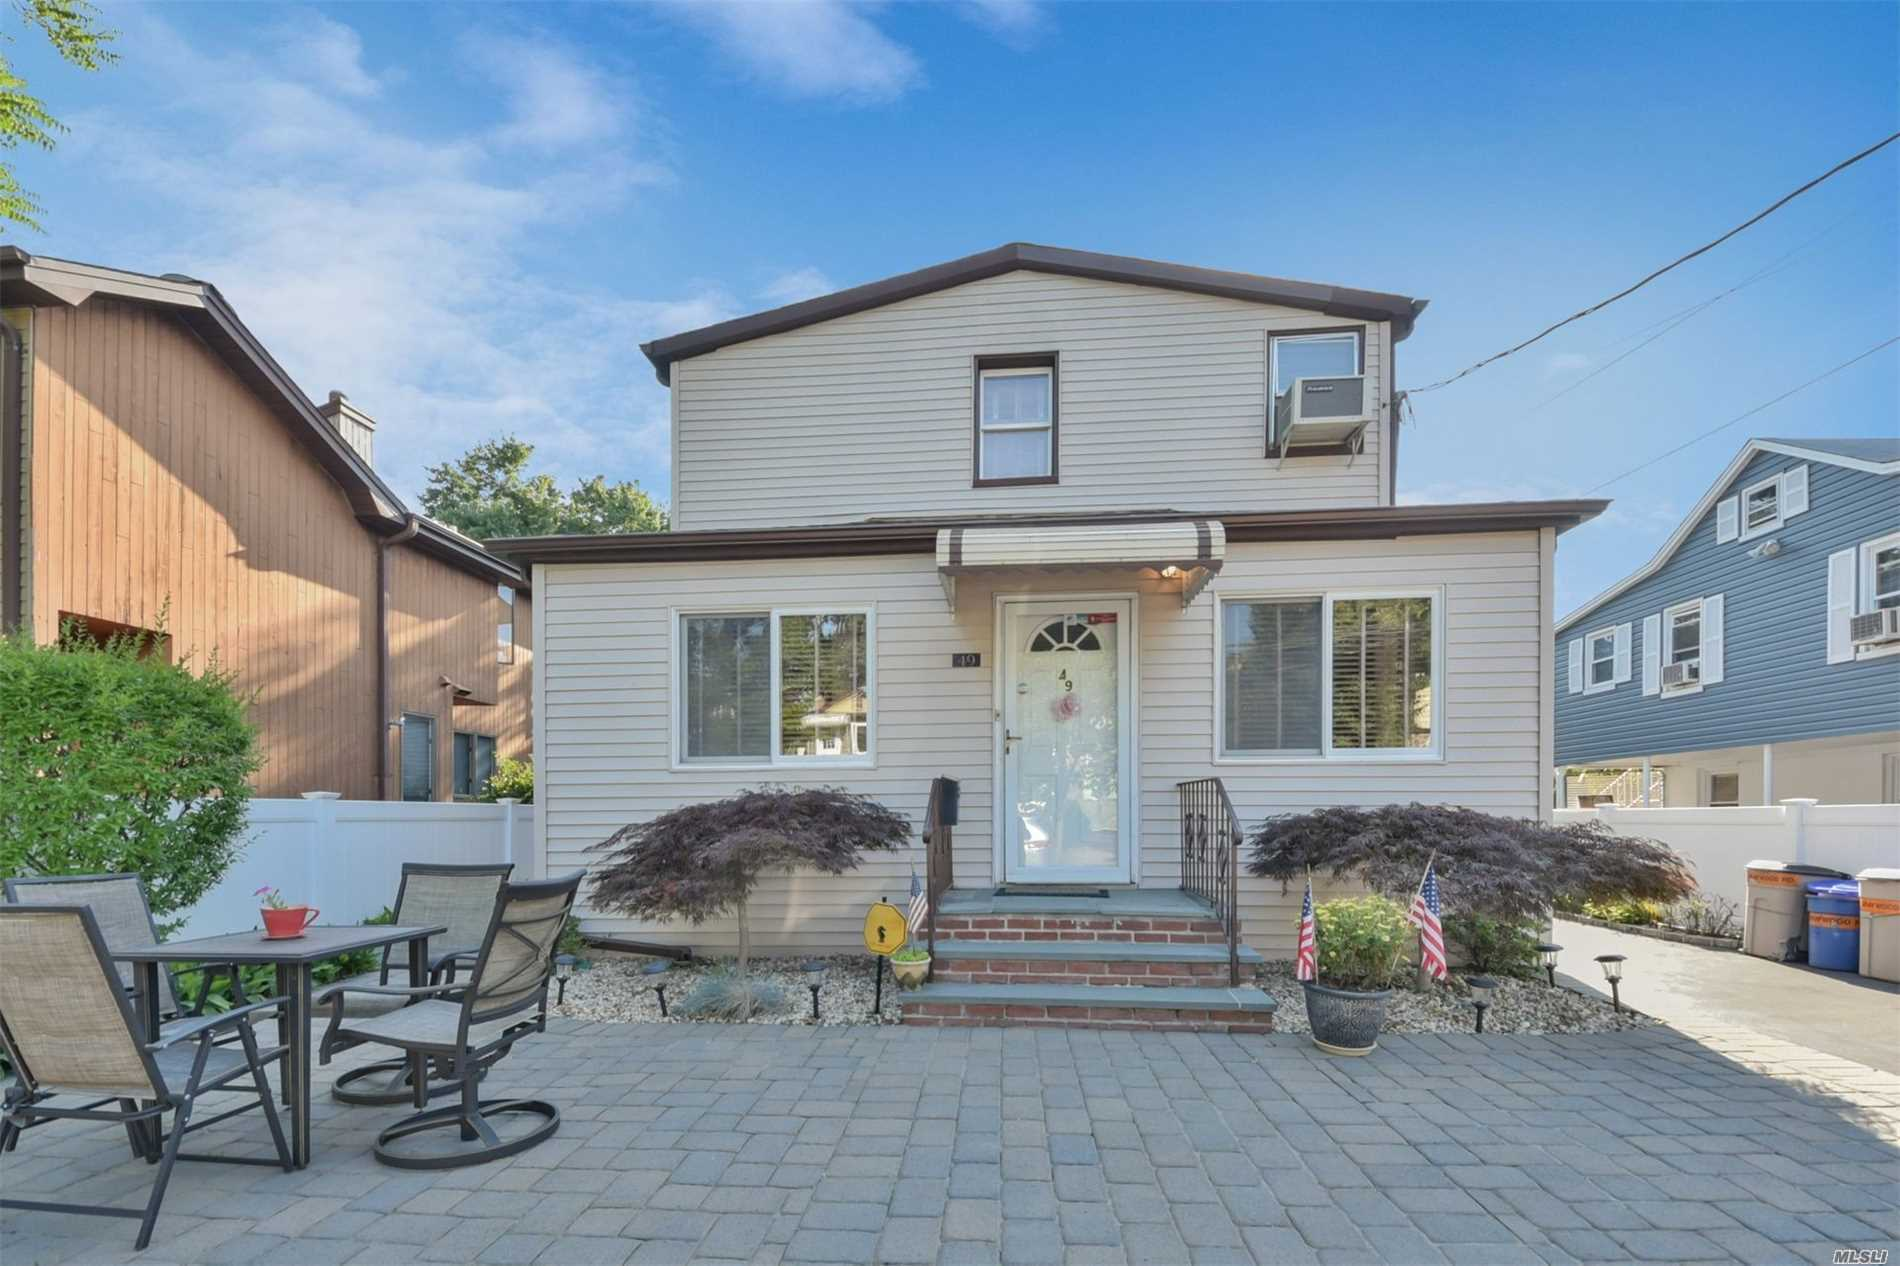 Immaculately Maintained, Ready To Move In, Great Investment Opportunity. . Home Features Updated Kitchens, Baths And Spacious Bedrooms. Beautiful Backyard Affording Tremendous Privacy, With Shed For Storage. Roof Still Under Warranty. Seeing Is Believing. Won't Last.